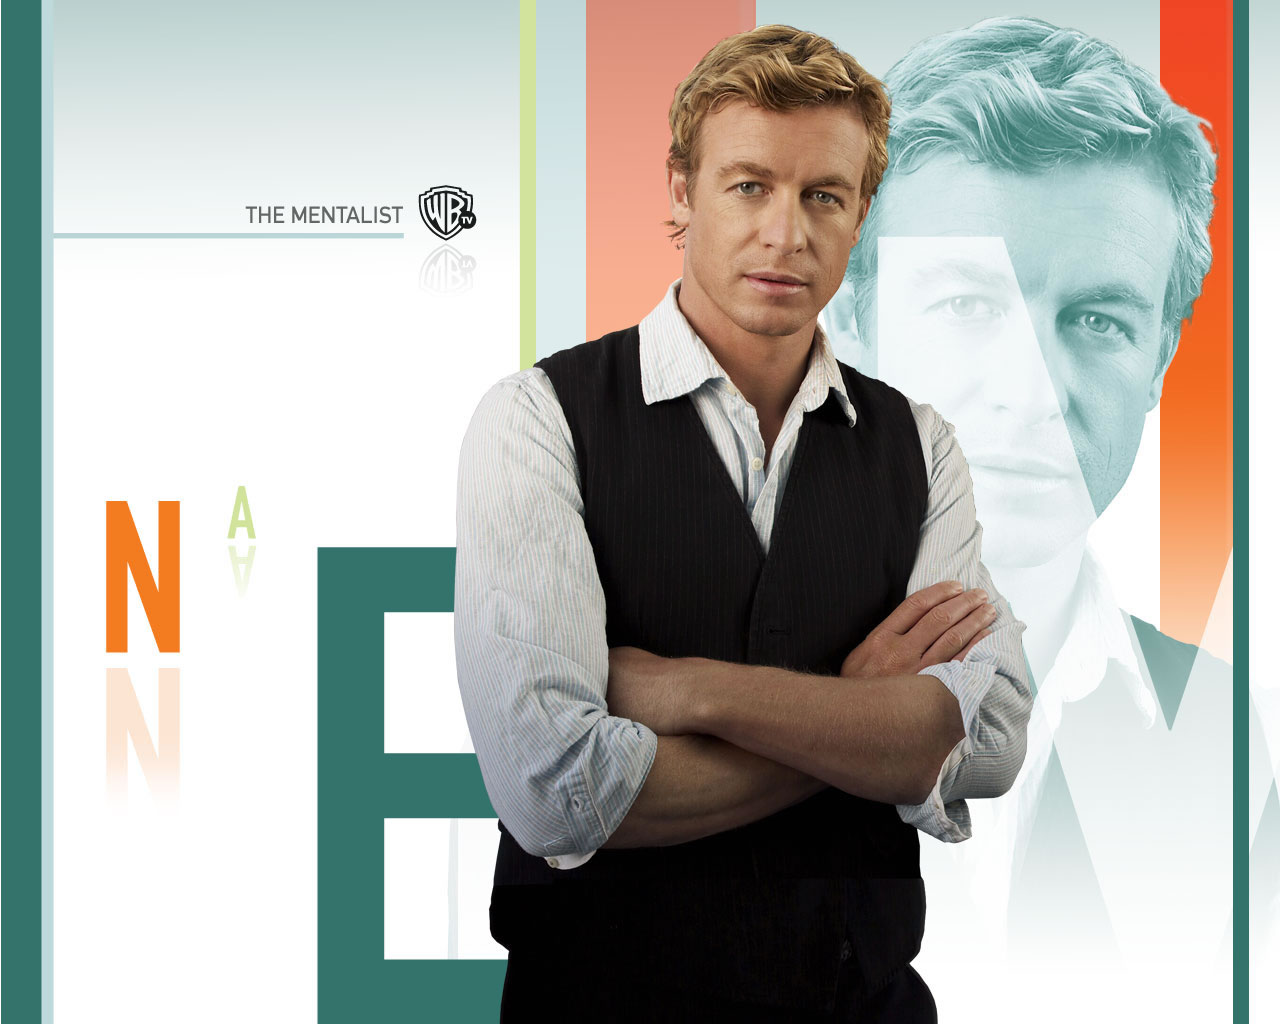 The Mentalist wallpaper 10